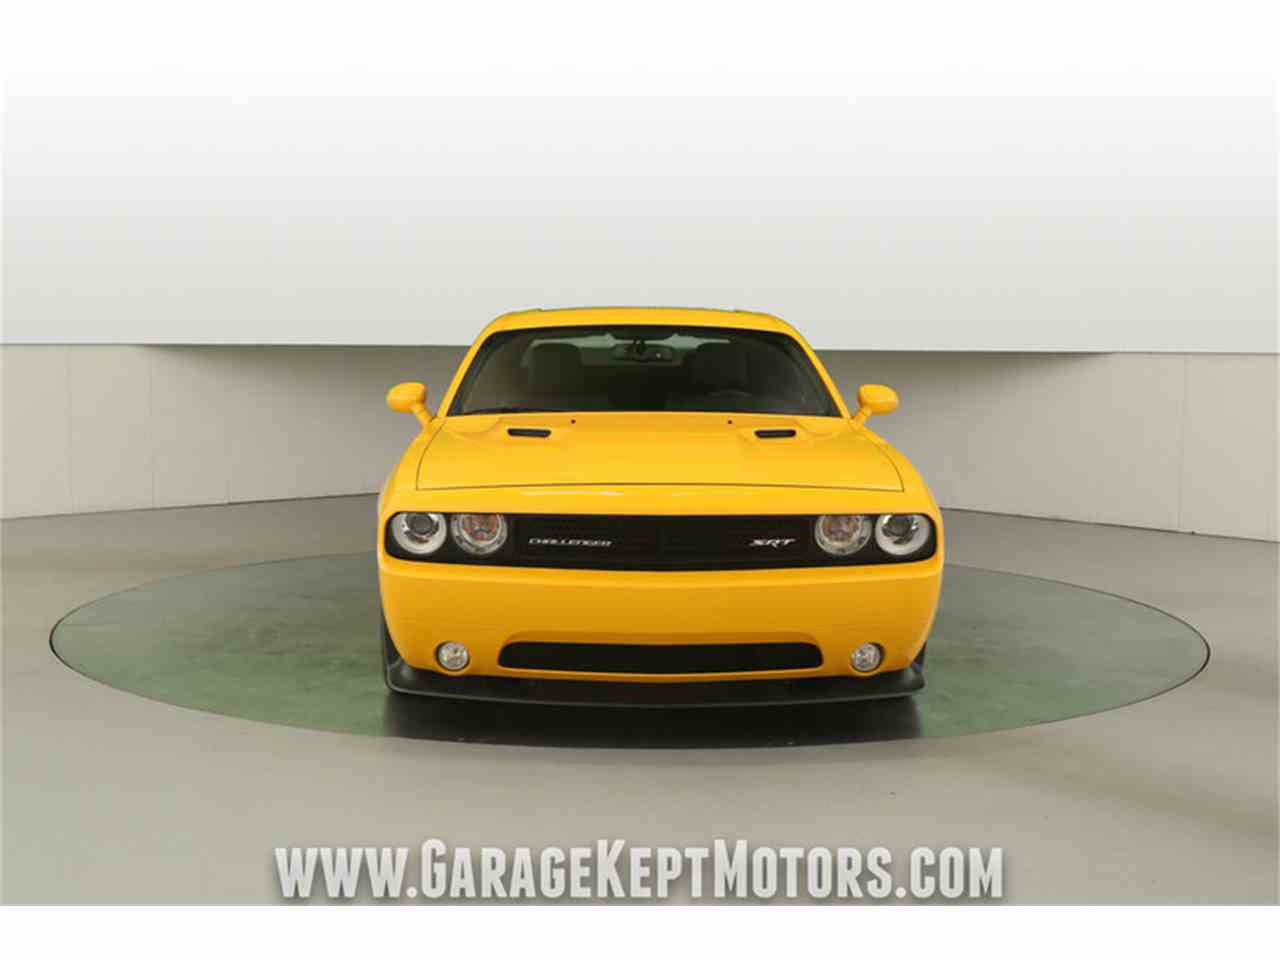 Large Picture of 2012 Dodge Challenger SRT8 392 Yellow Jacket Offered by Garage Kept Motors - MAXR